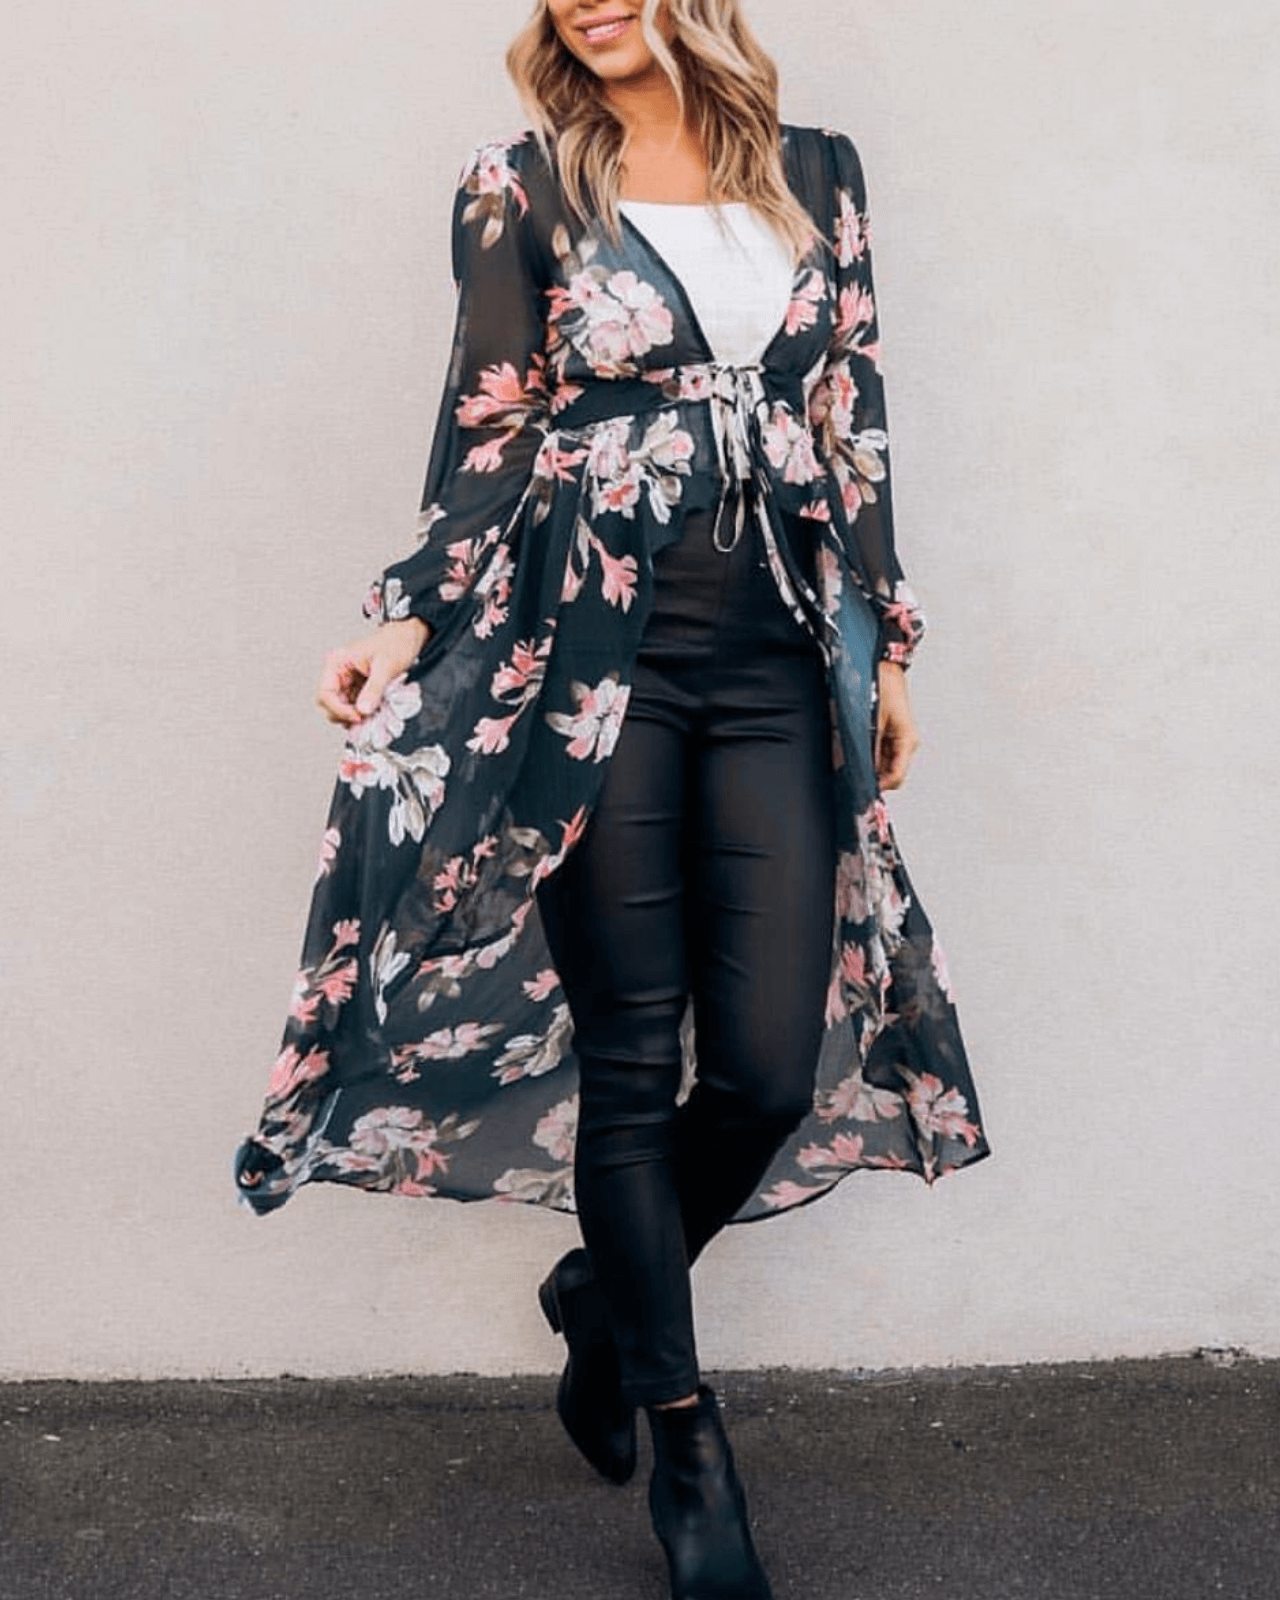 Ryder Cape Dress - Dark Emerald Floral